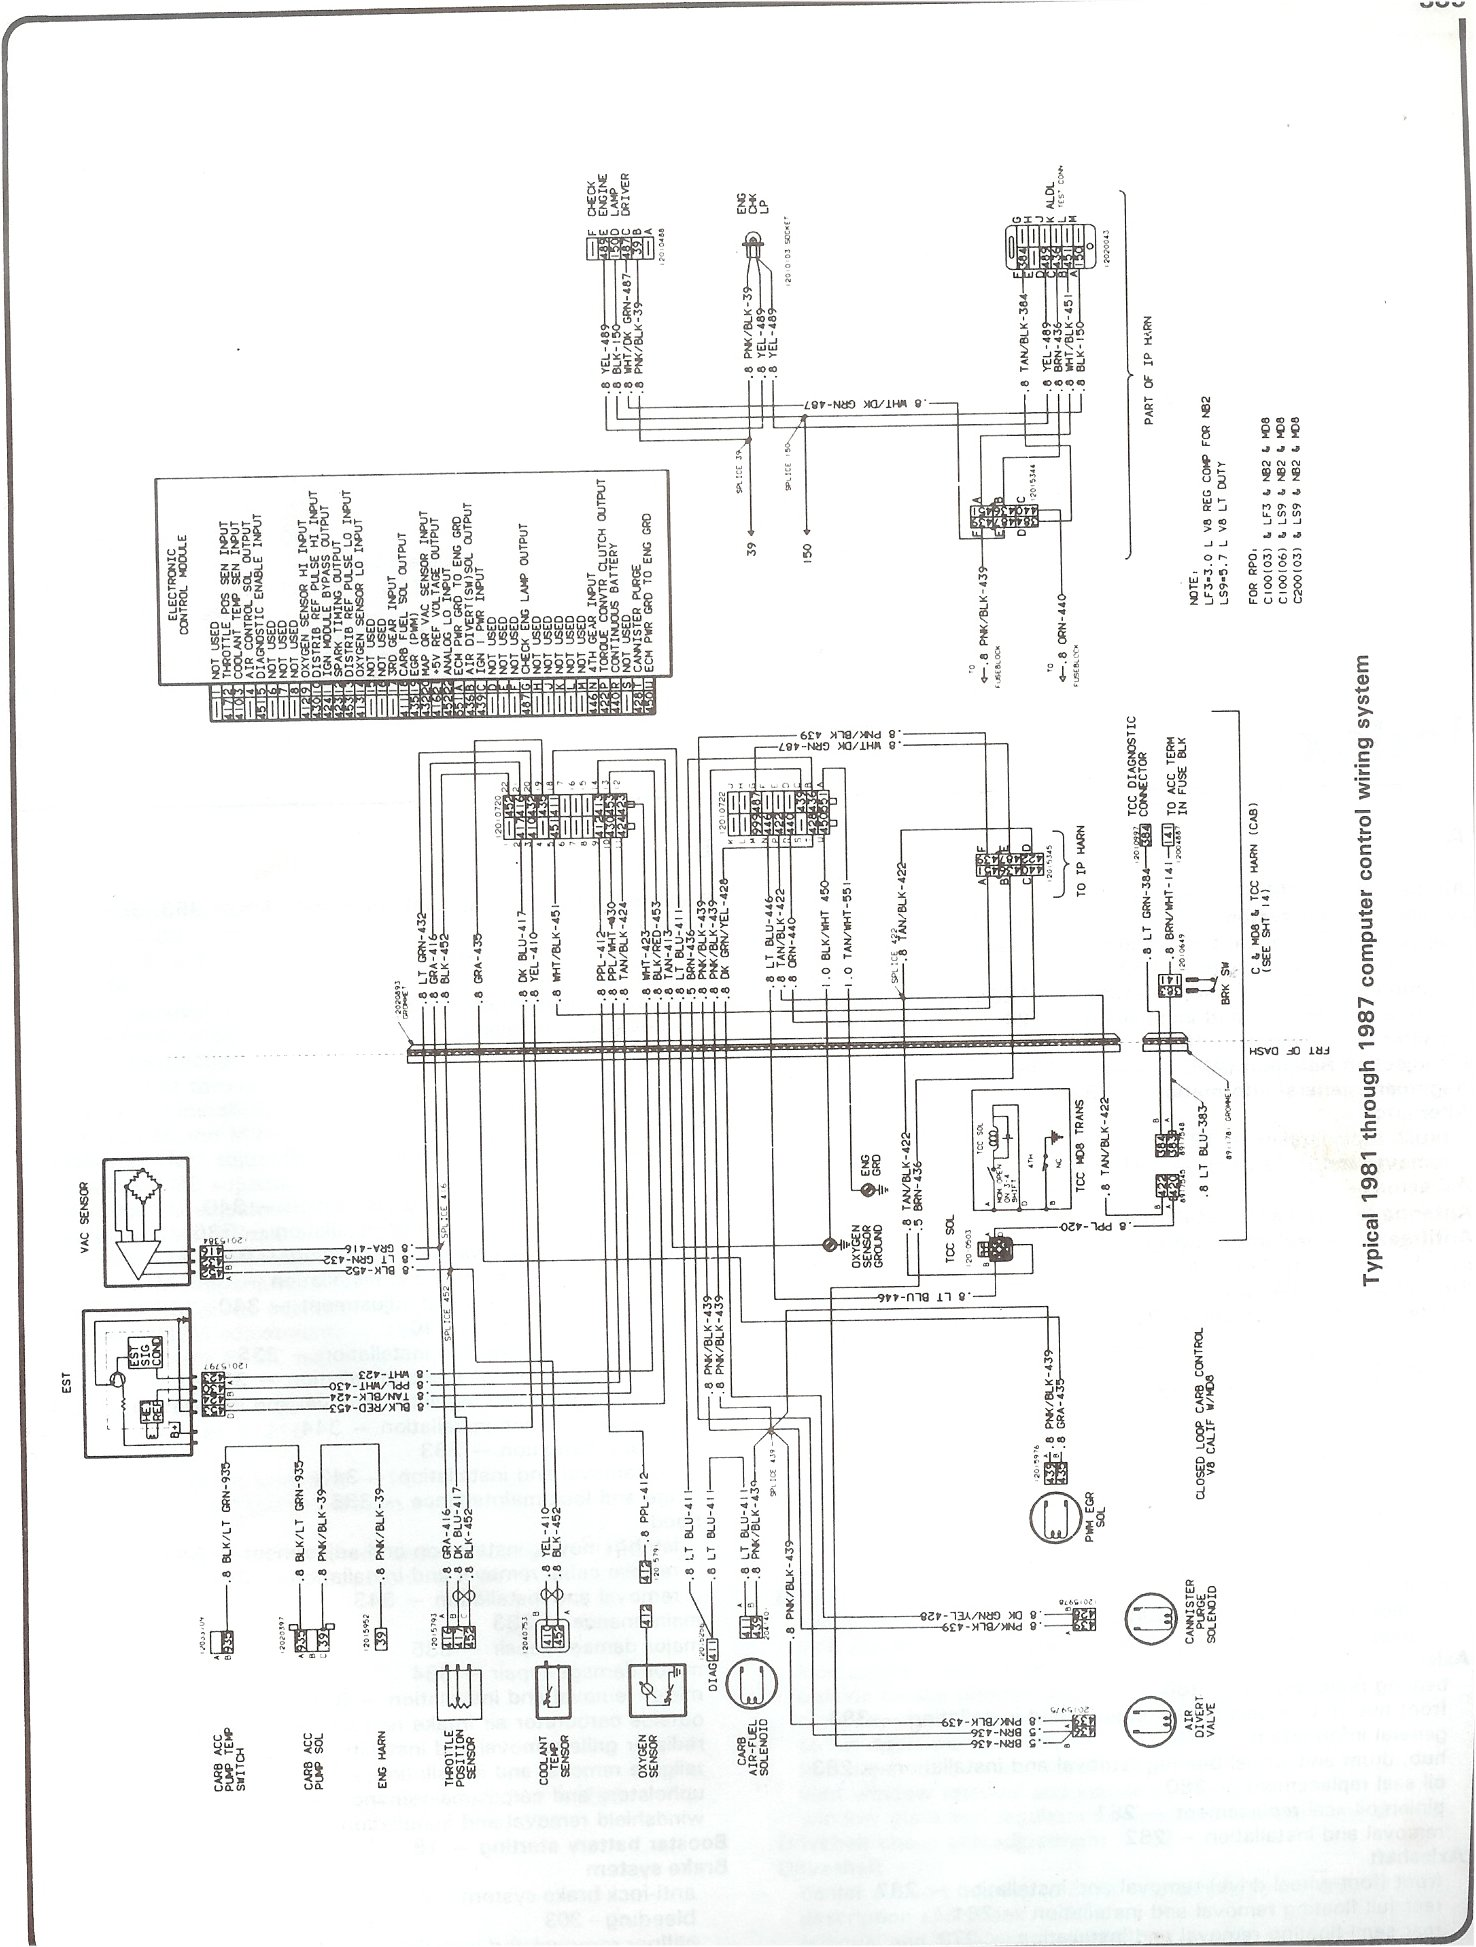 complete 73 87 wiring diagrams rh forum 73 87chevytrucks com Wiring Diagram 1984 Chevy 3500 Wiring Diagram 1984 Chevy 3500